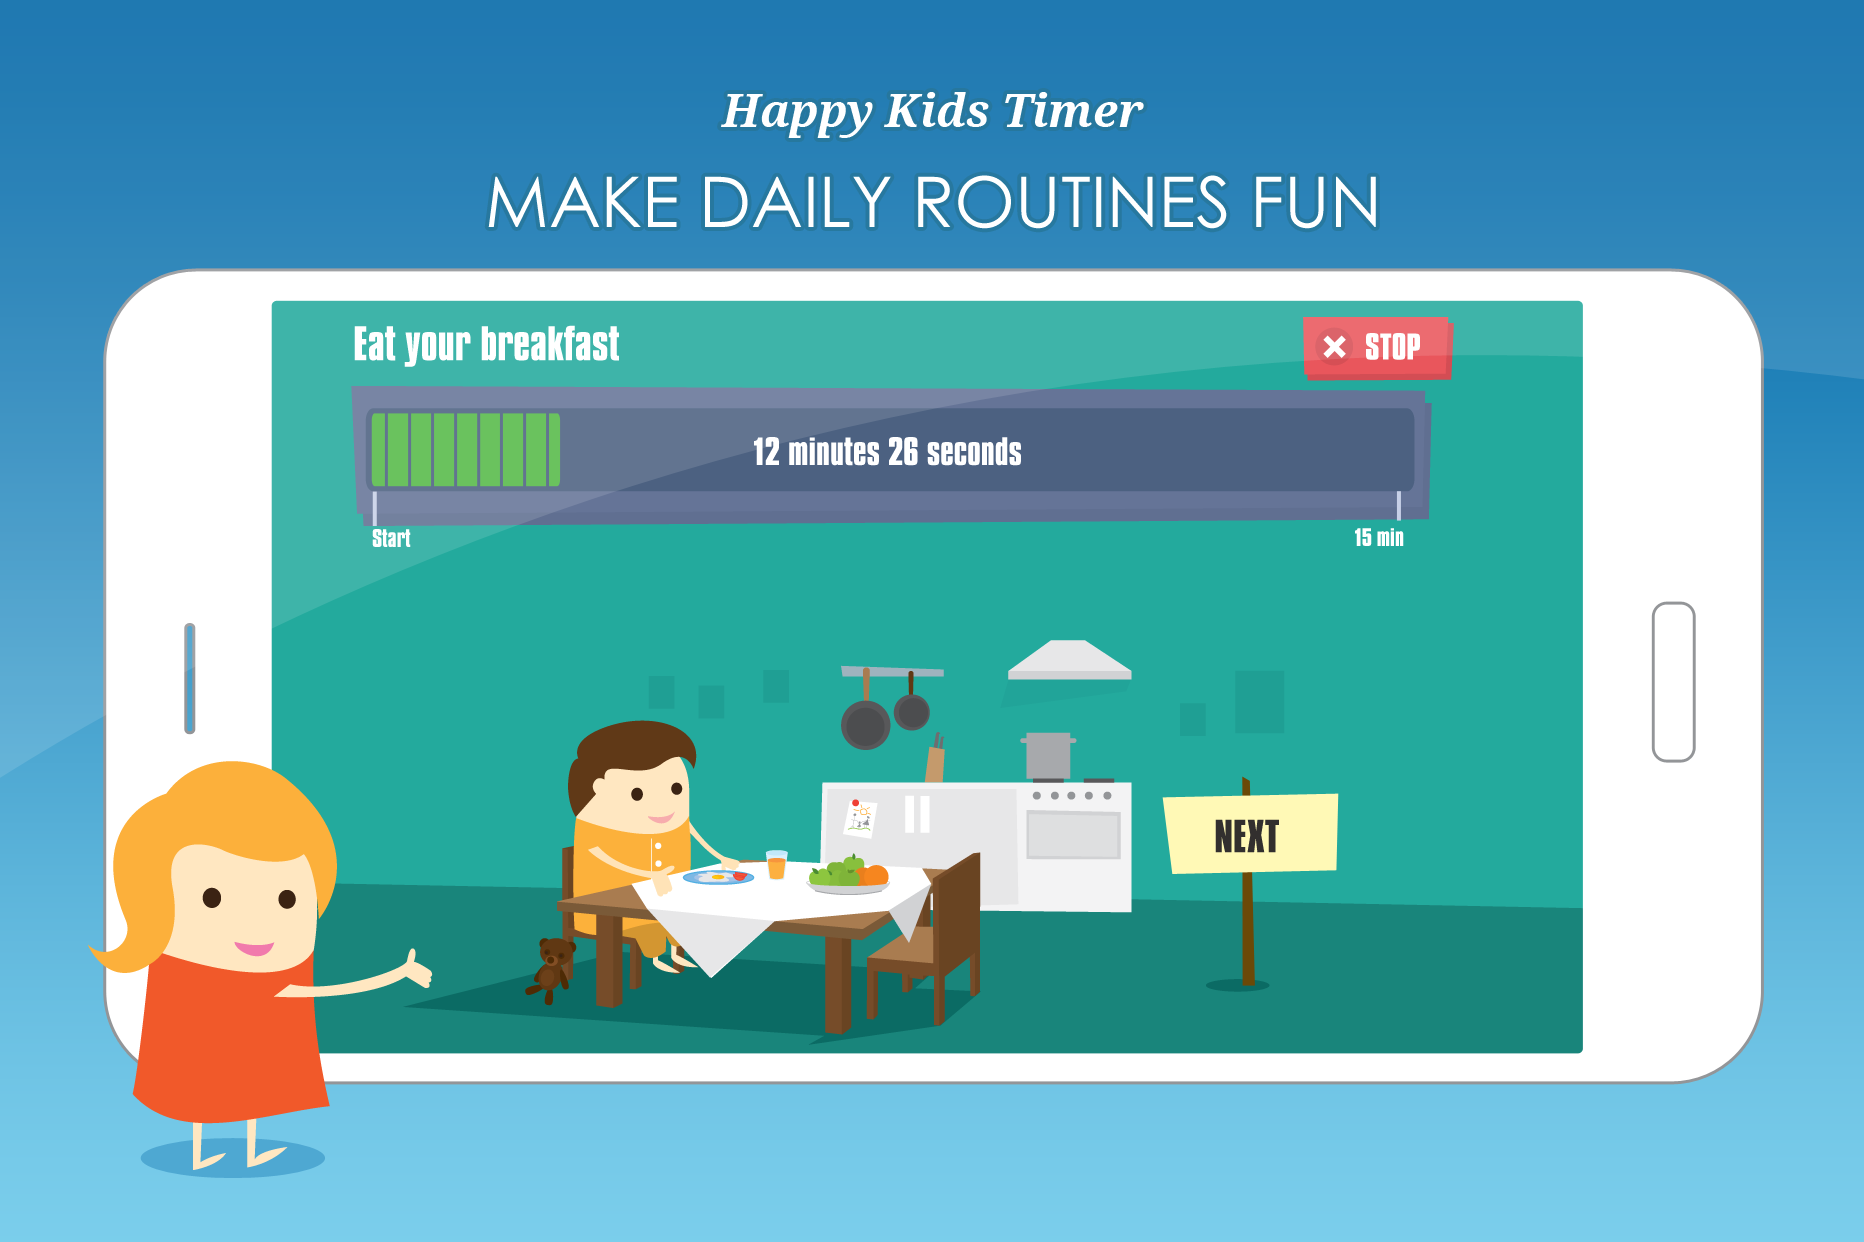 Happy Kids Timer